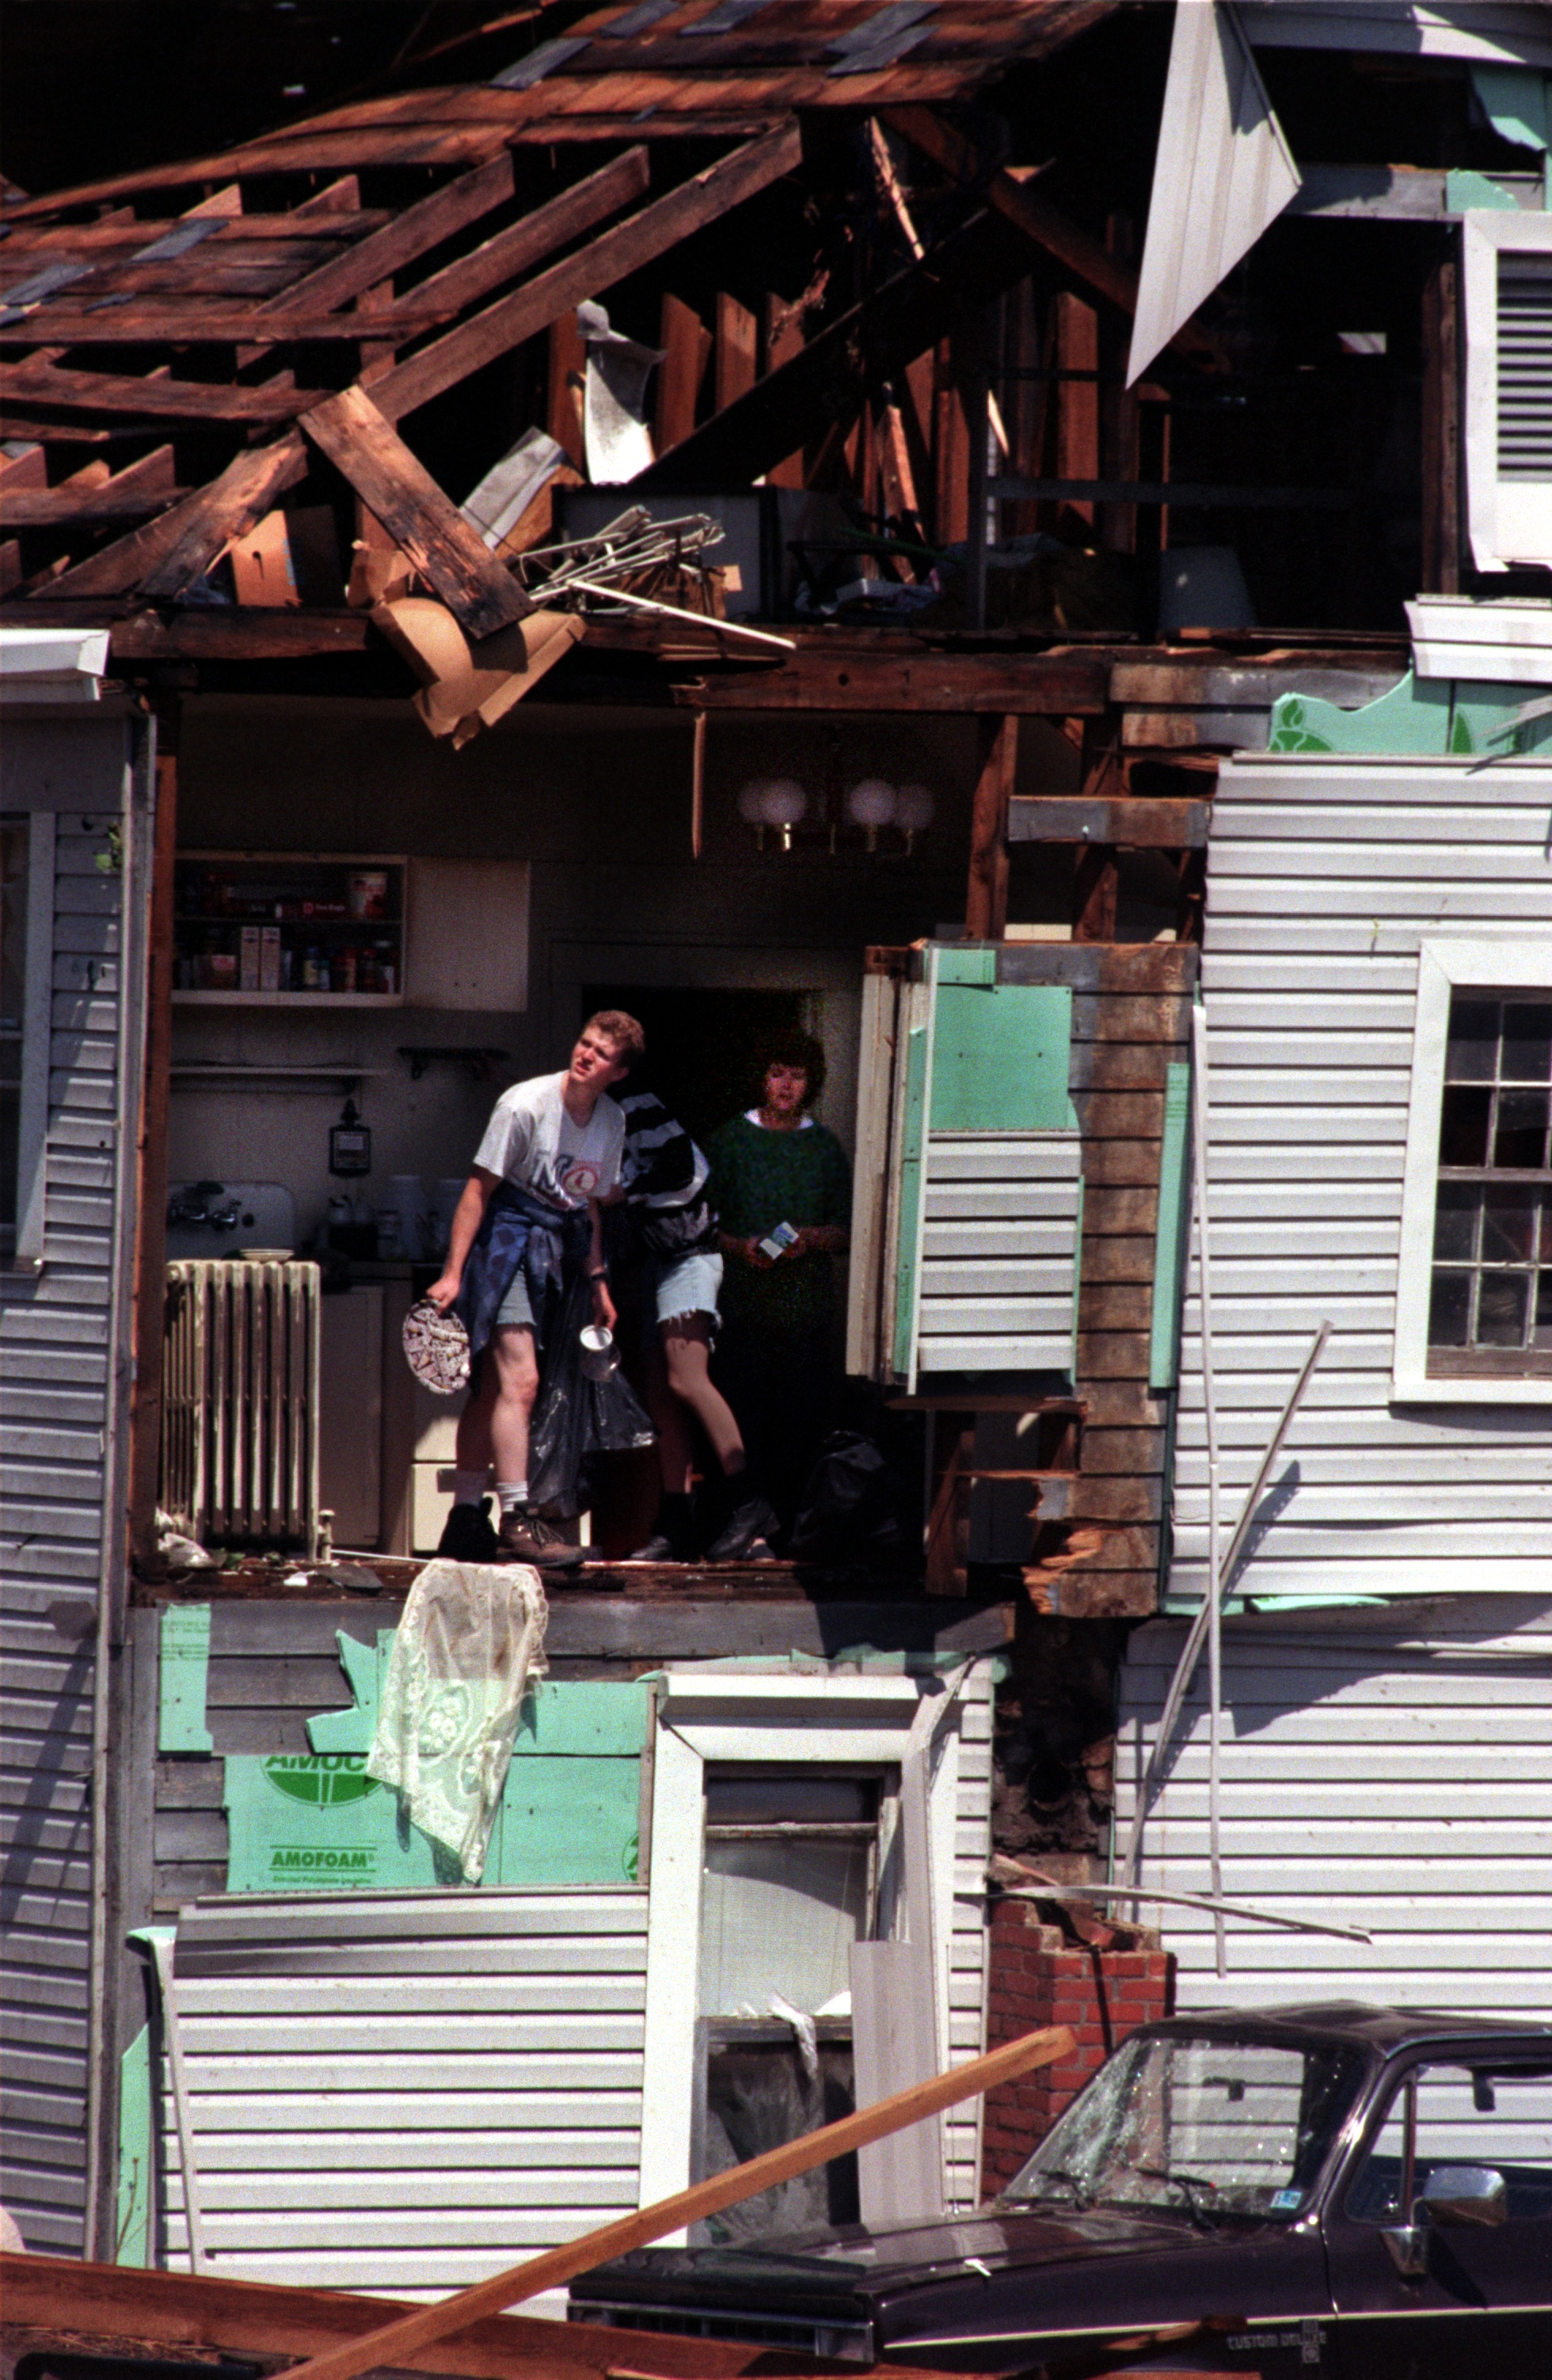 when tornadoes tormented the pittsburgh region